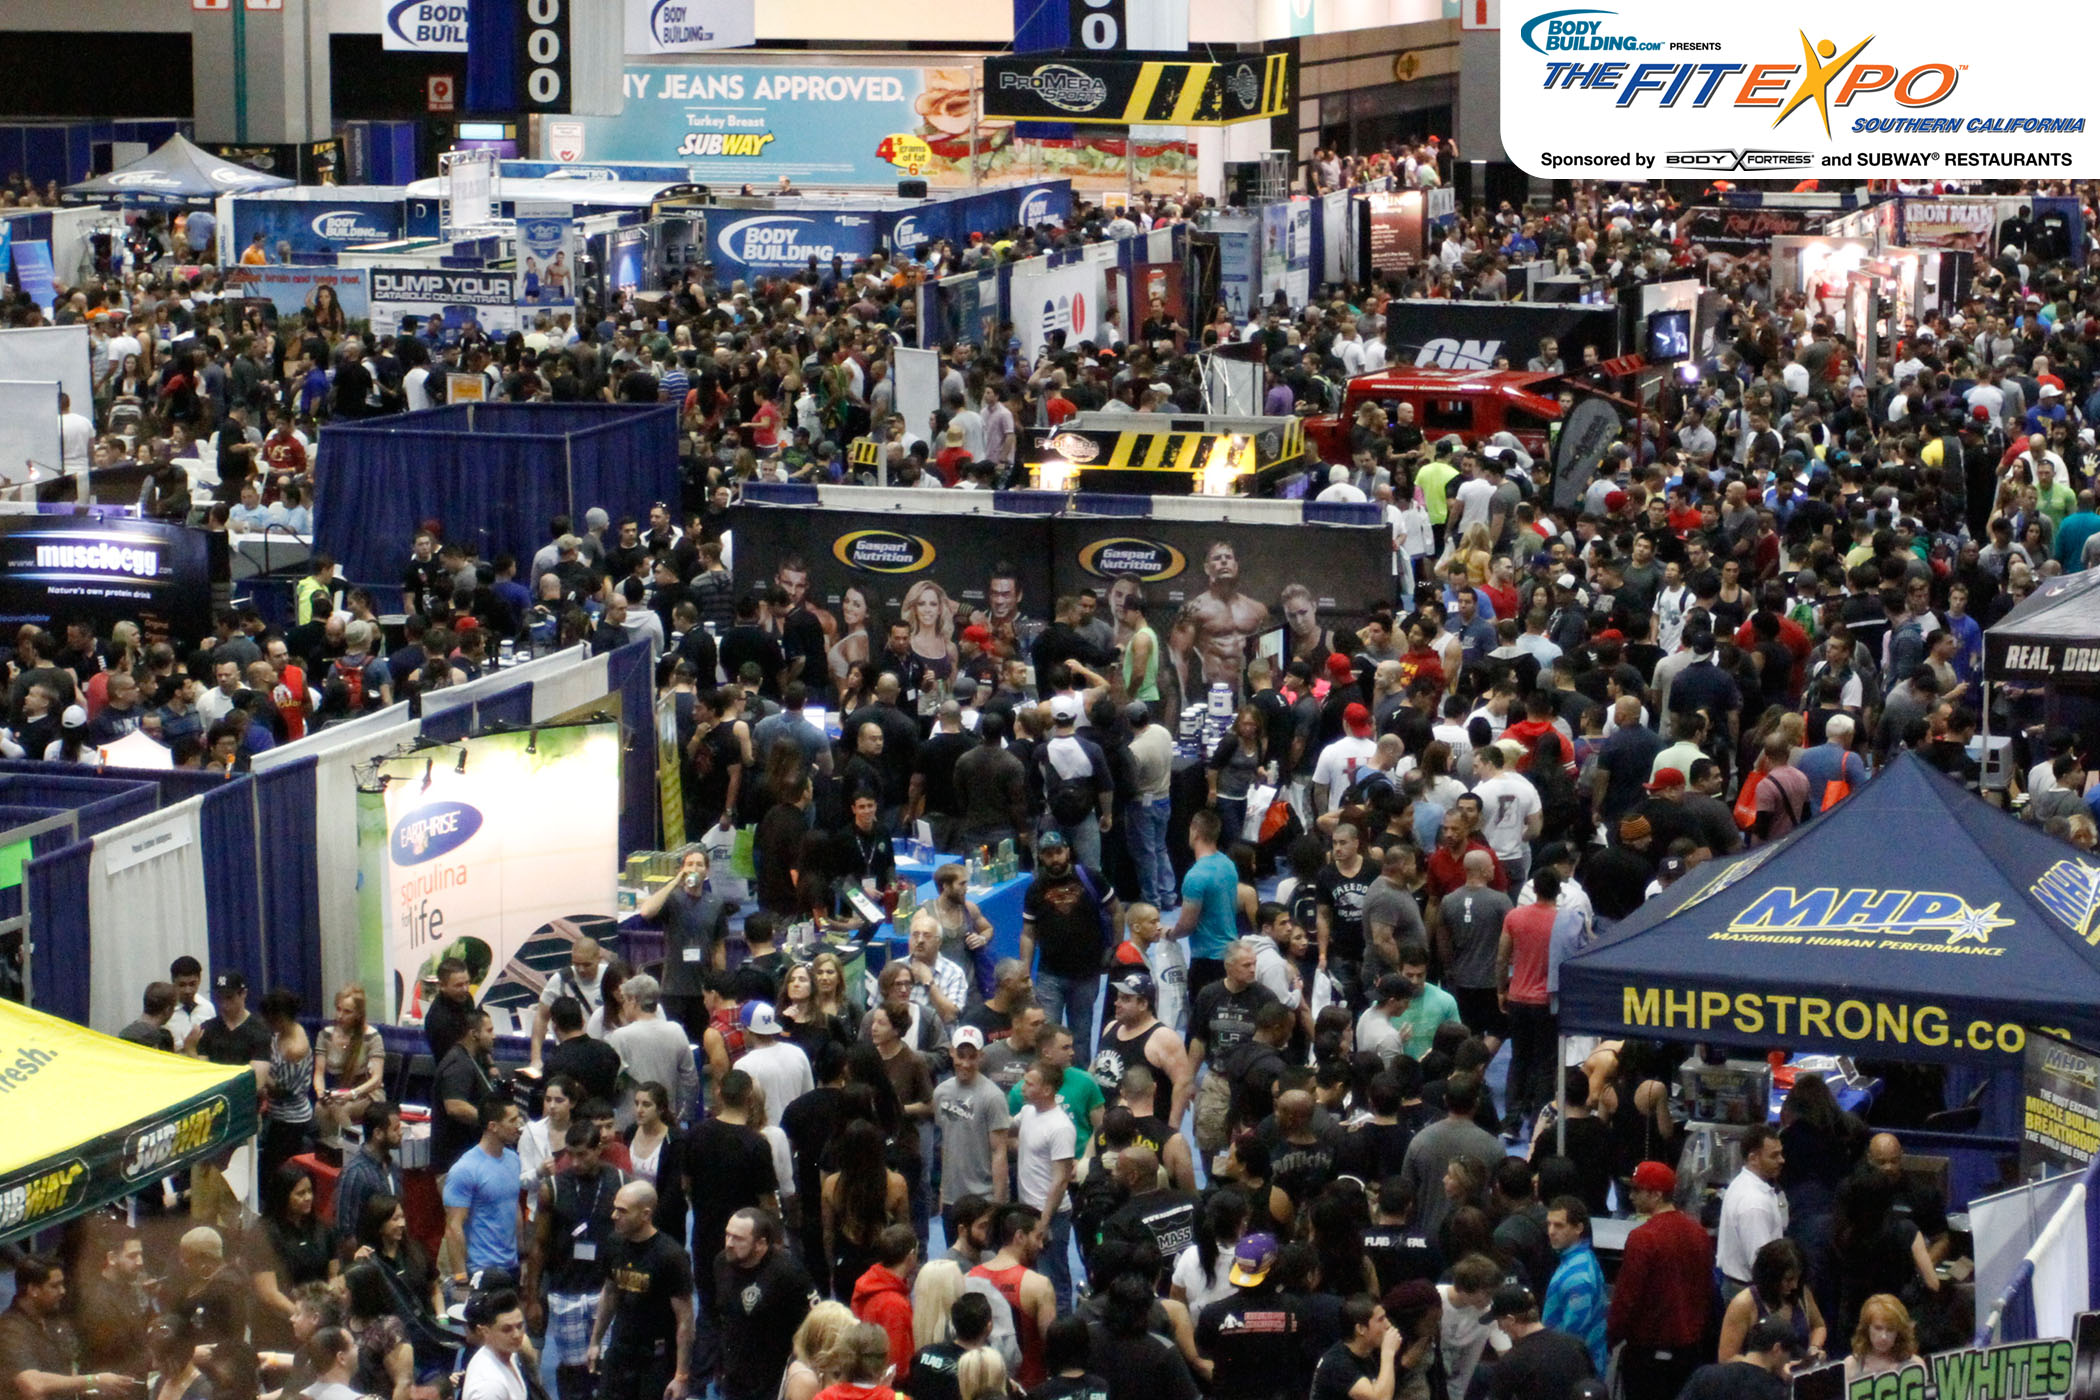 The Best in Fitness Came to LA with The LA Fit Expo | OC ...